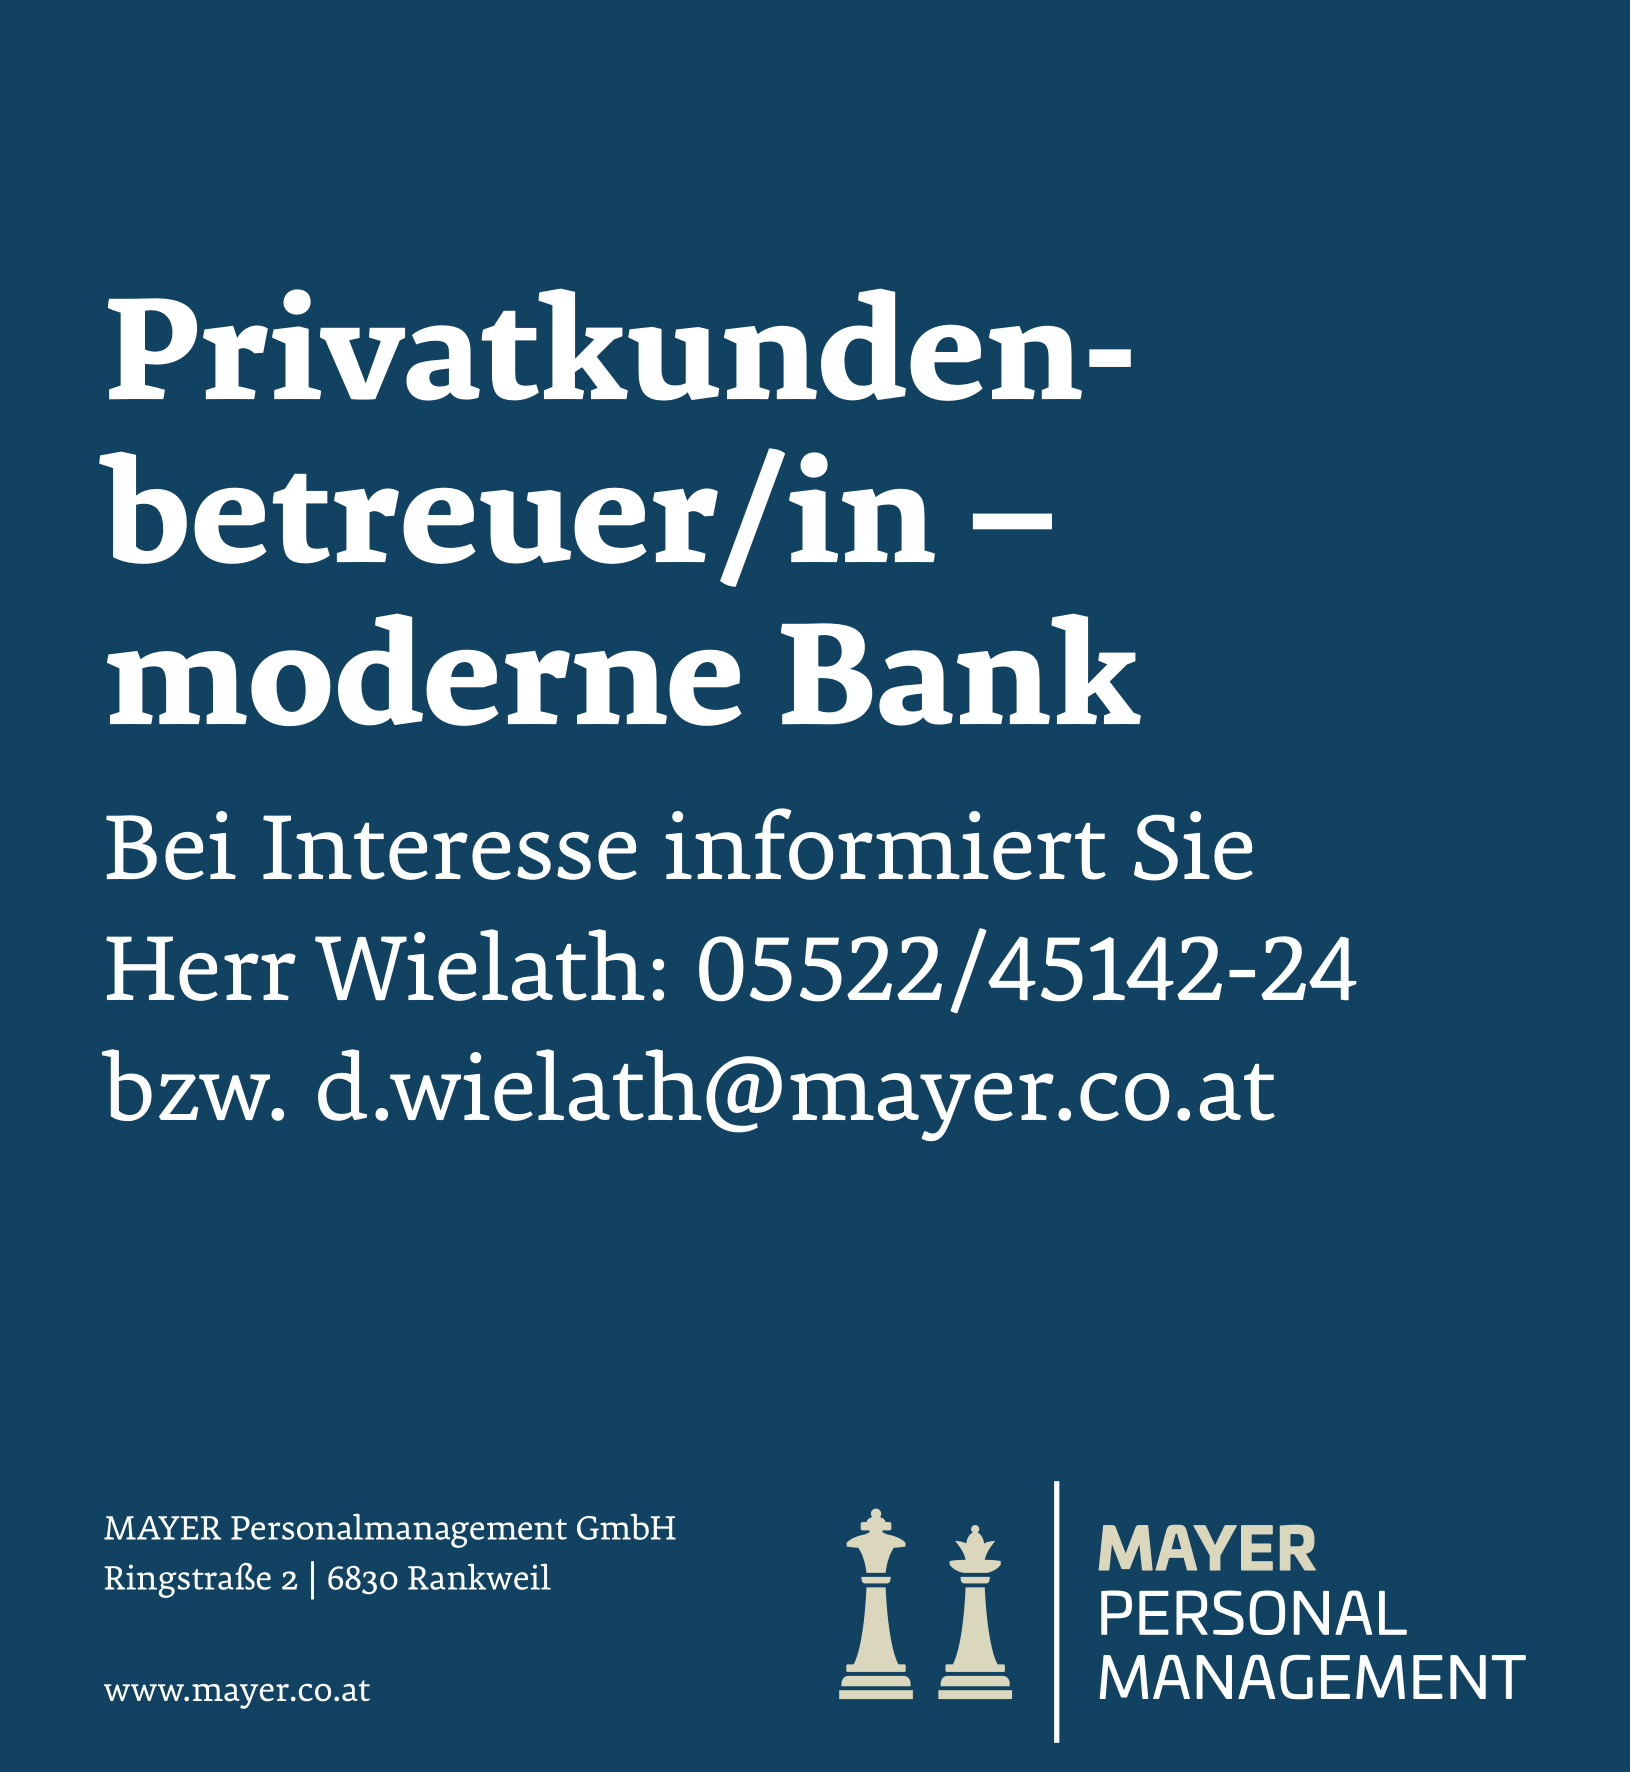 Privatkundenbetreuer/in - moderne Bank